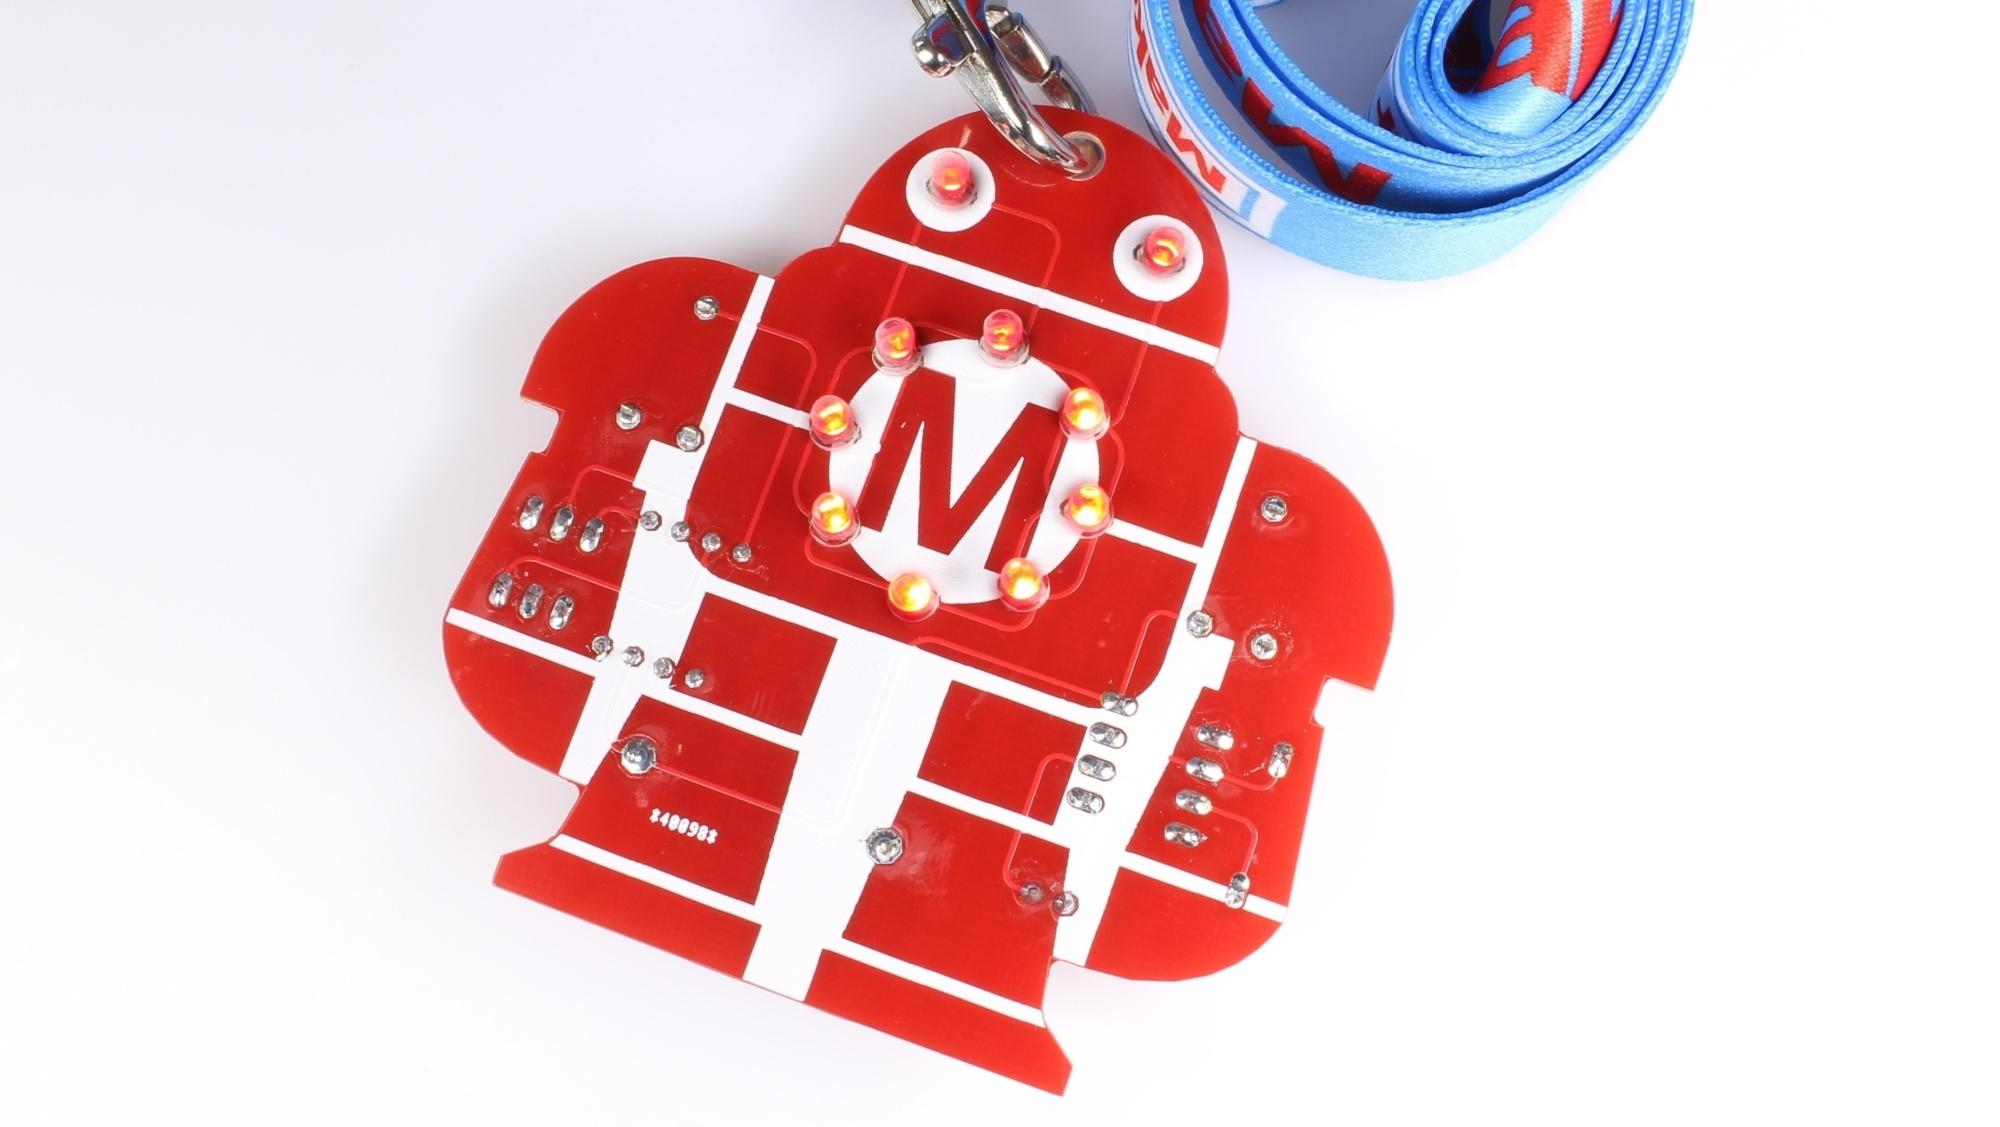 Rote Platine in Roboterform mit LEDs